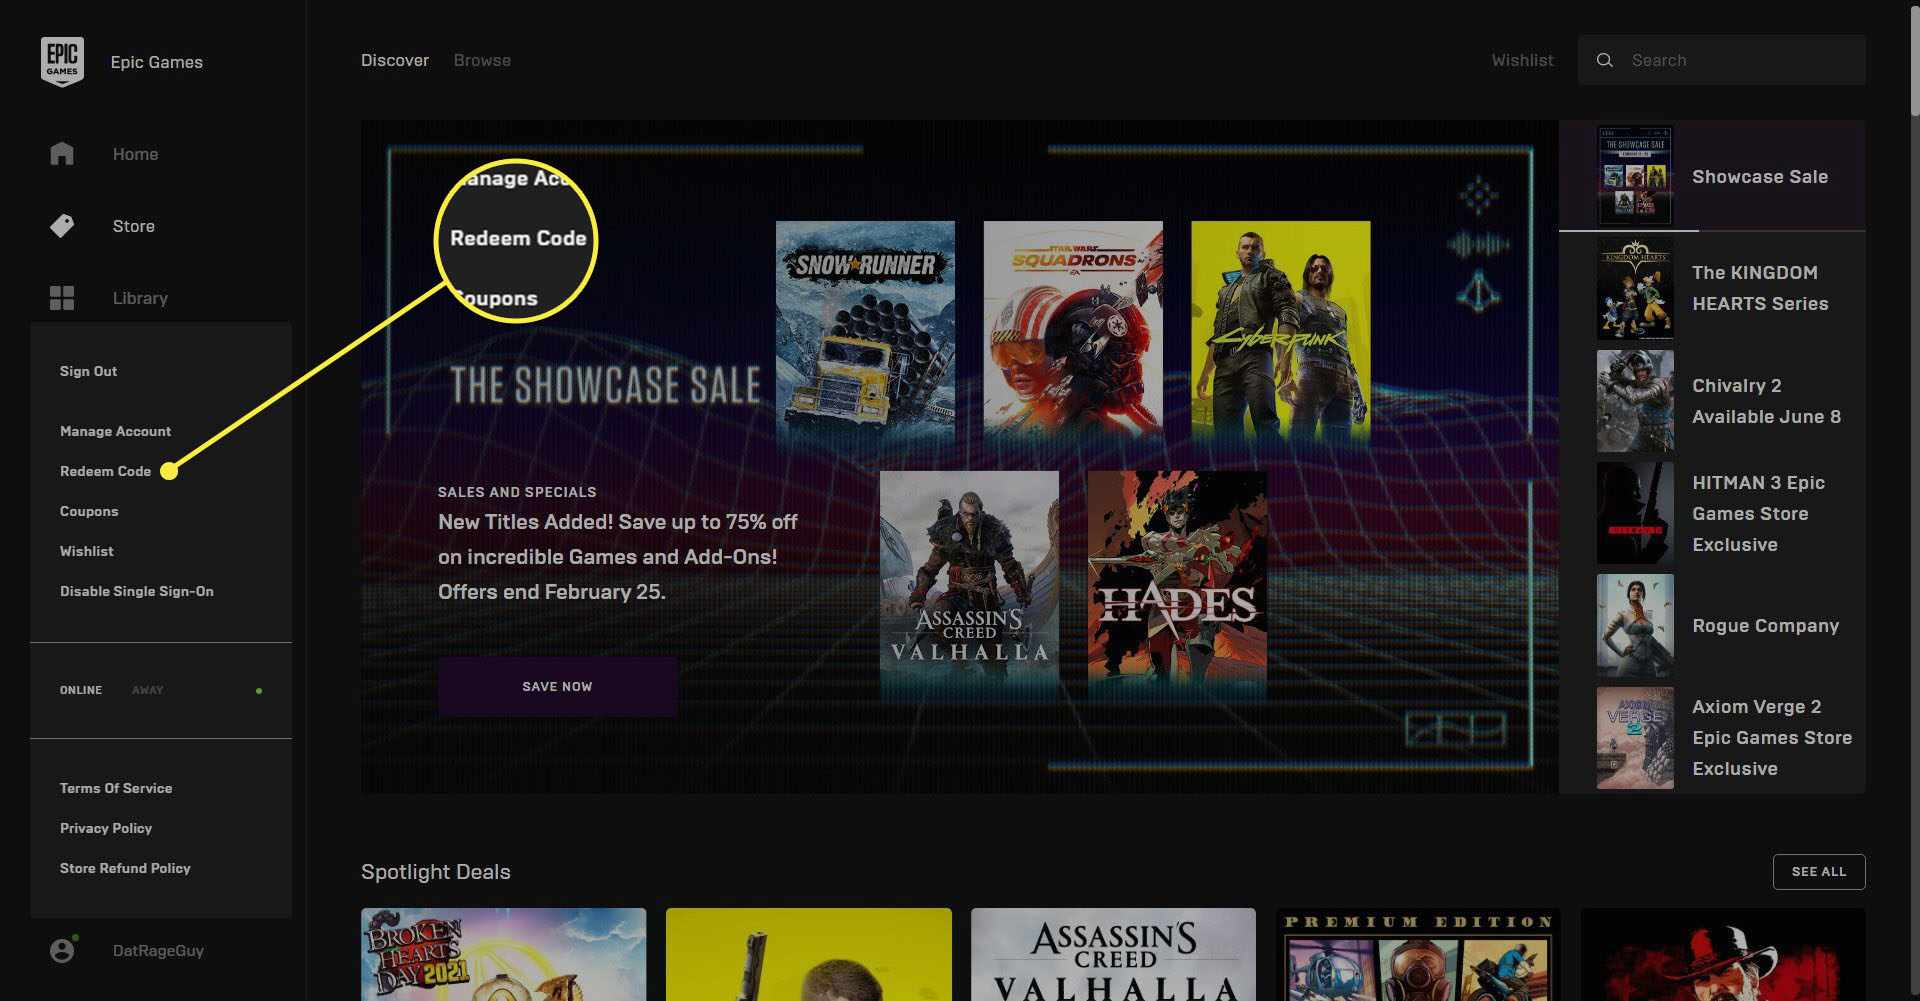 The Epic Games Launcher homepage with the Redeem Code highlighted.